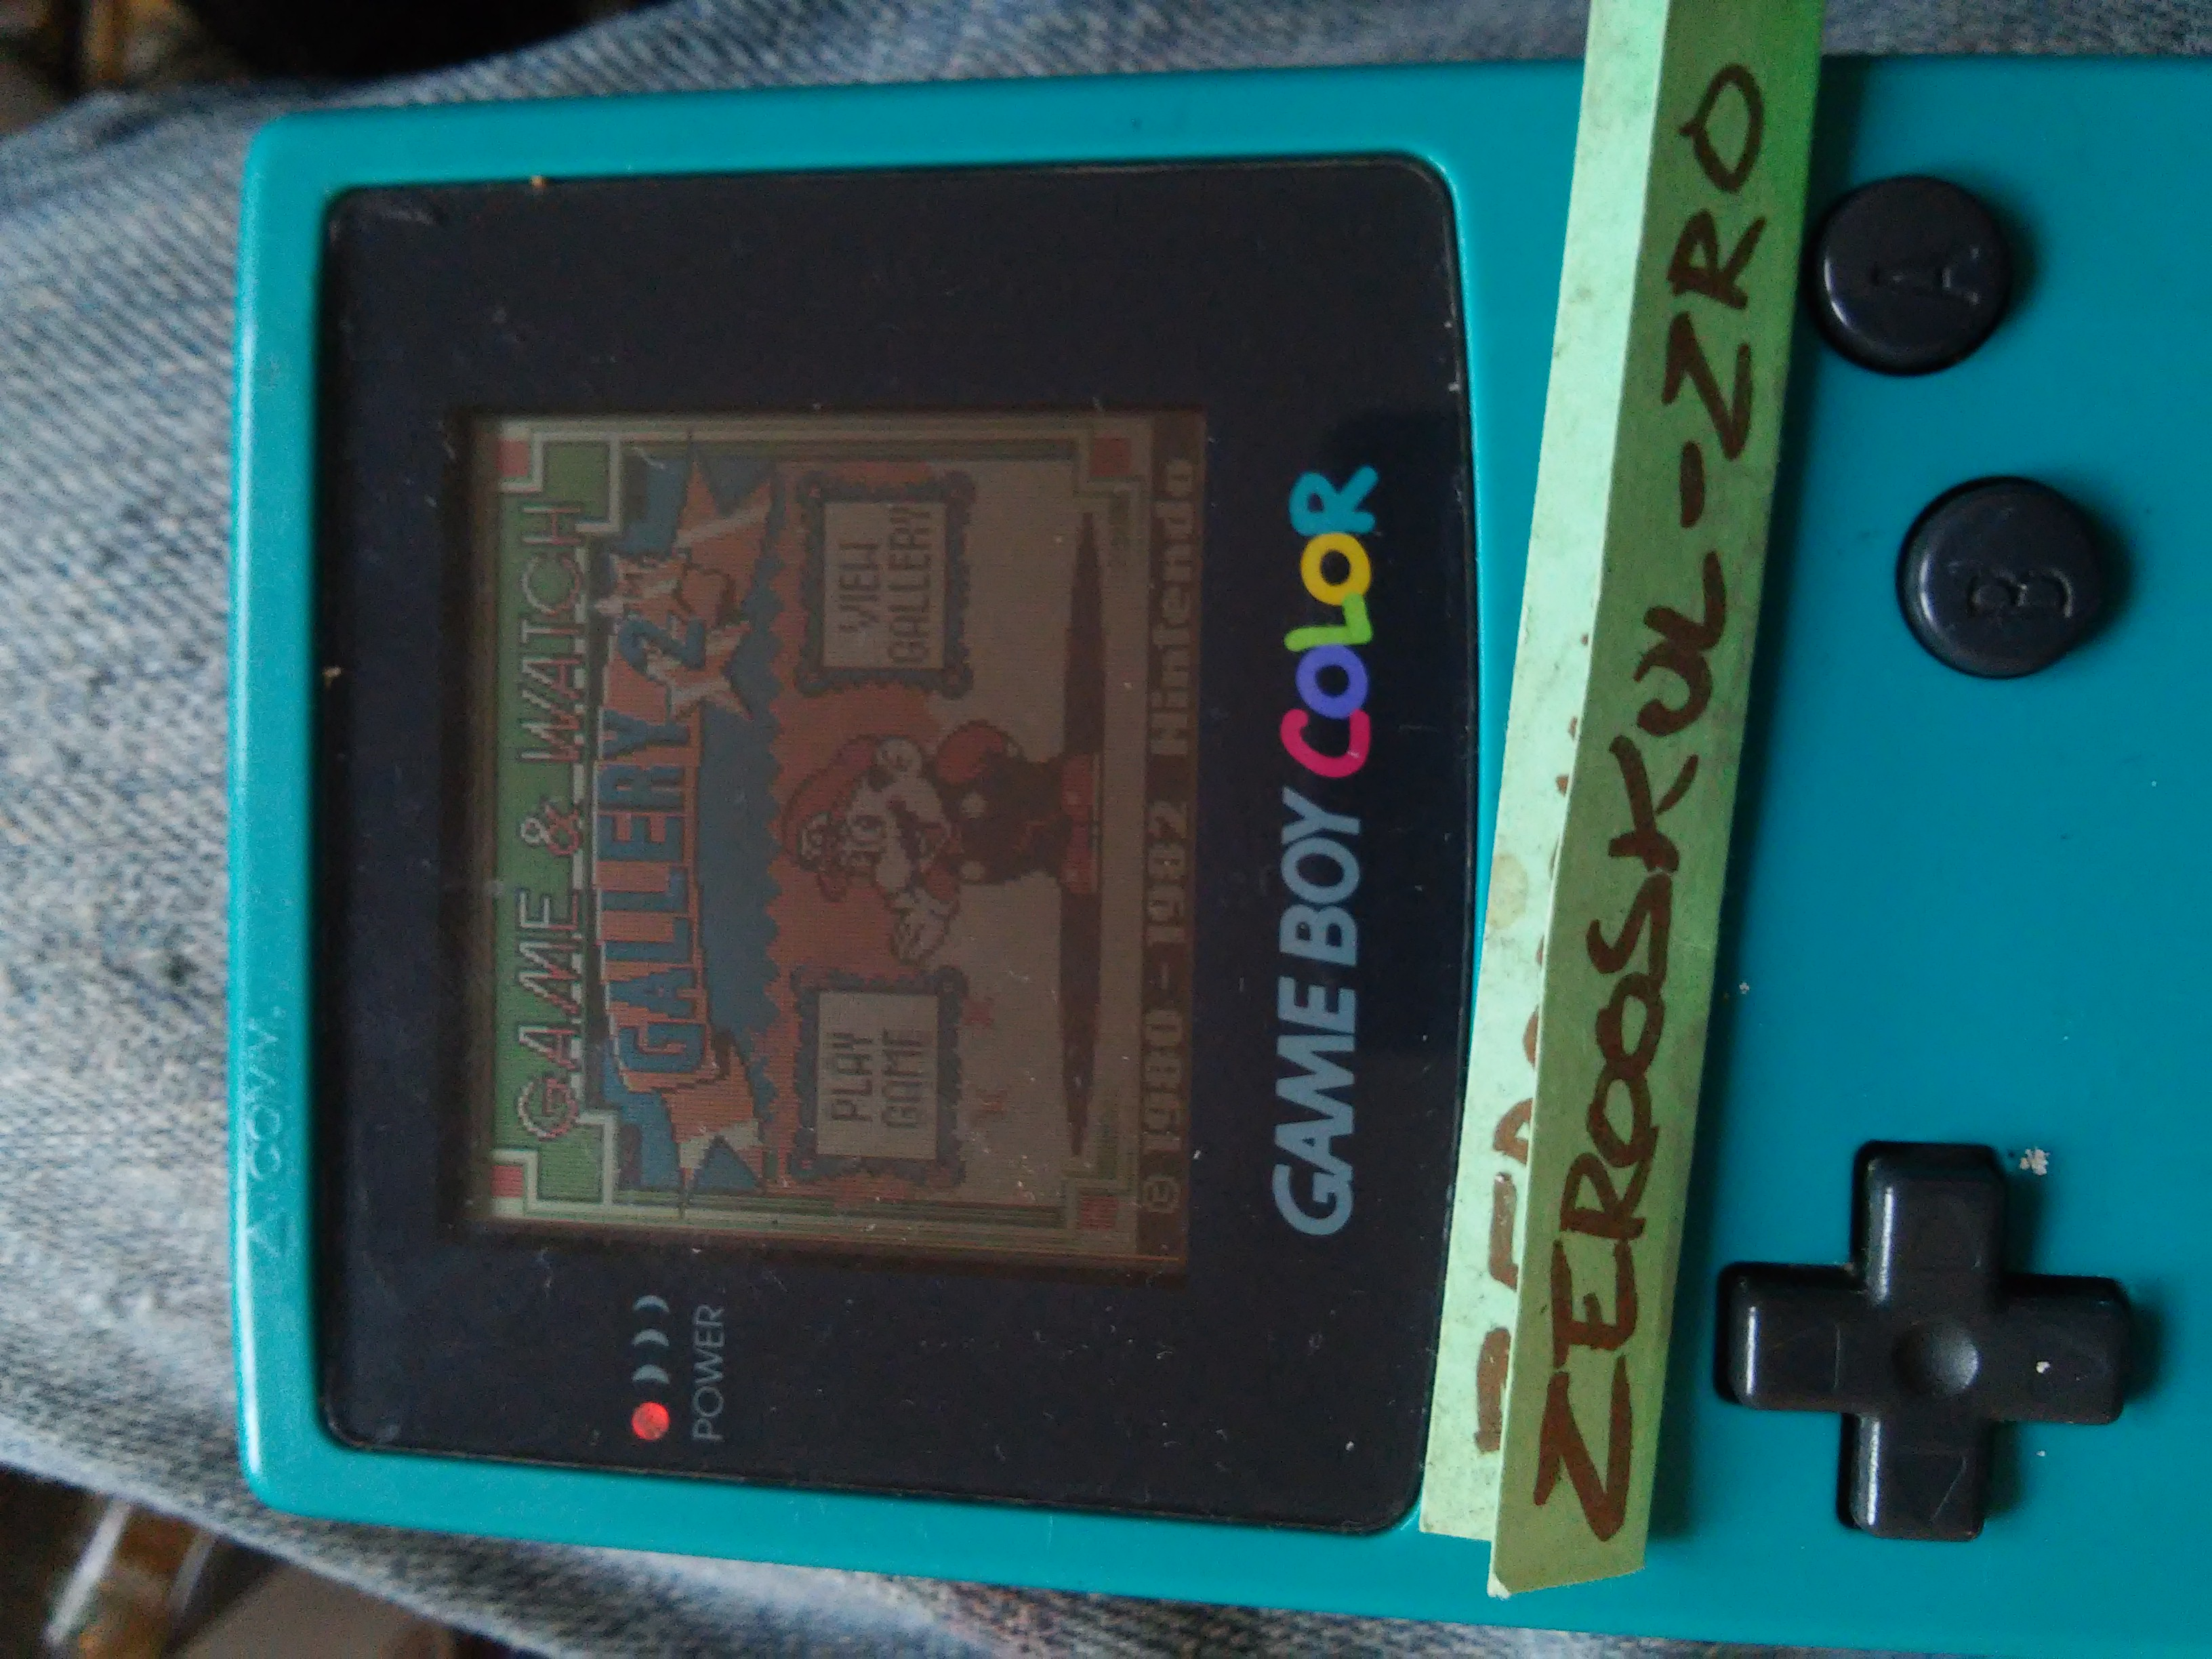 Game & Watch Gallery 2: Donkey Kong: Modern: Easy 2,342 points